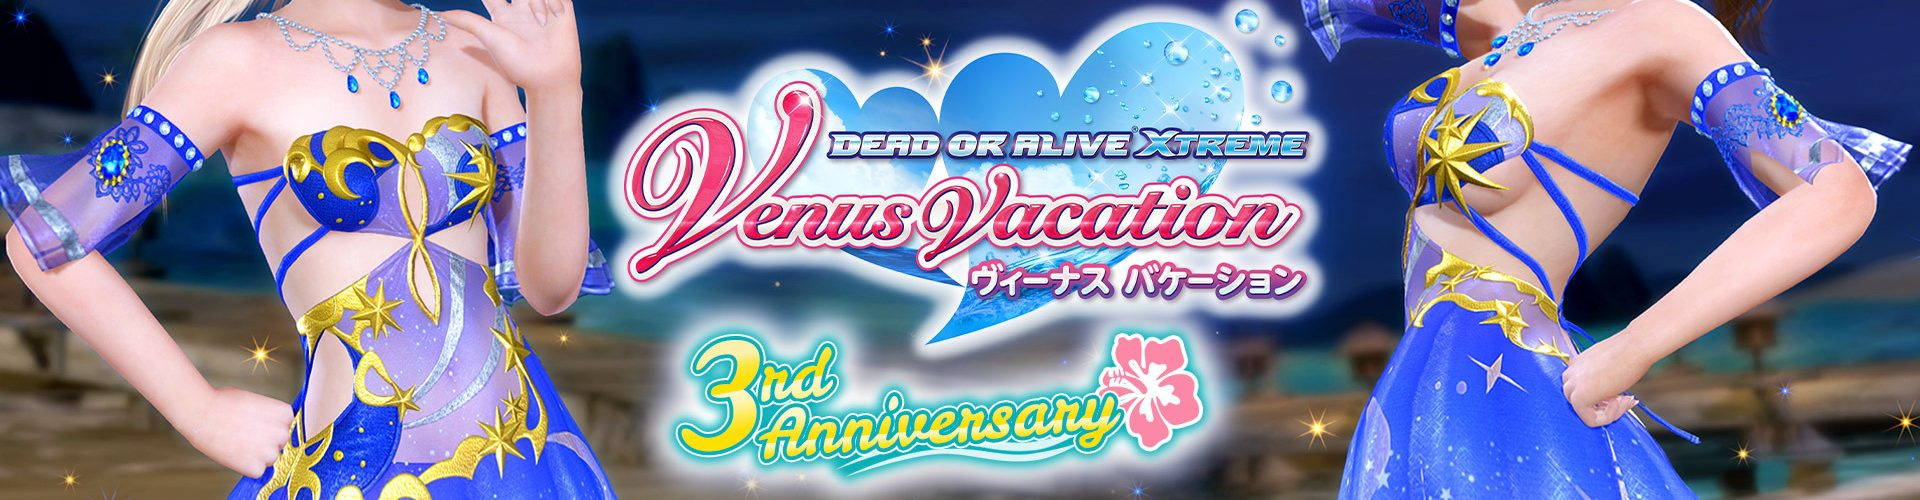 DOAX3 Fortune / Scarlet 完全制覇への道 with Venus Vacation